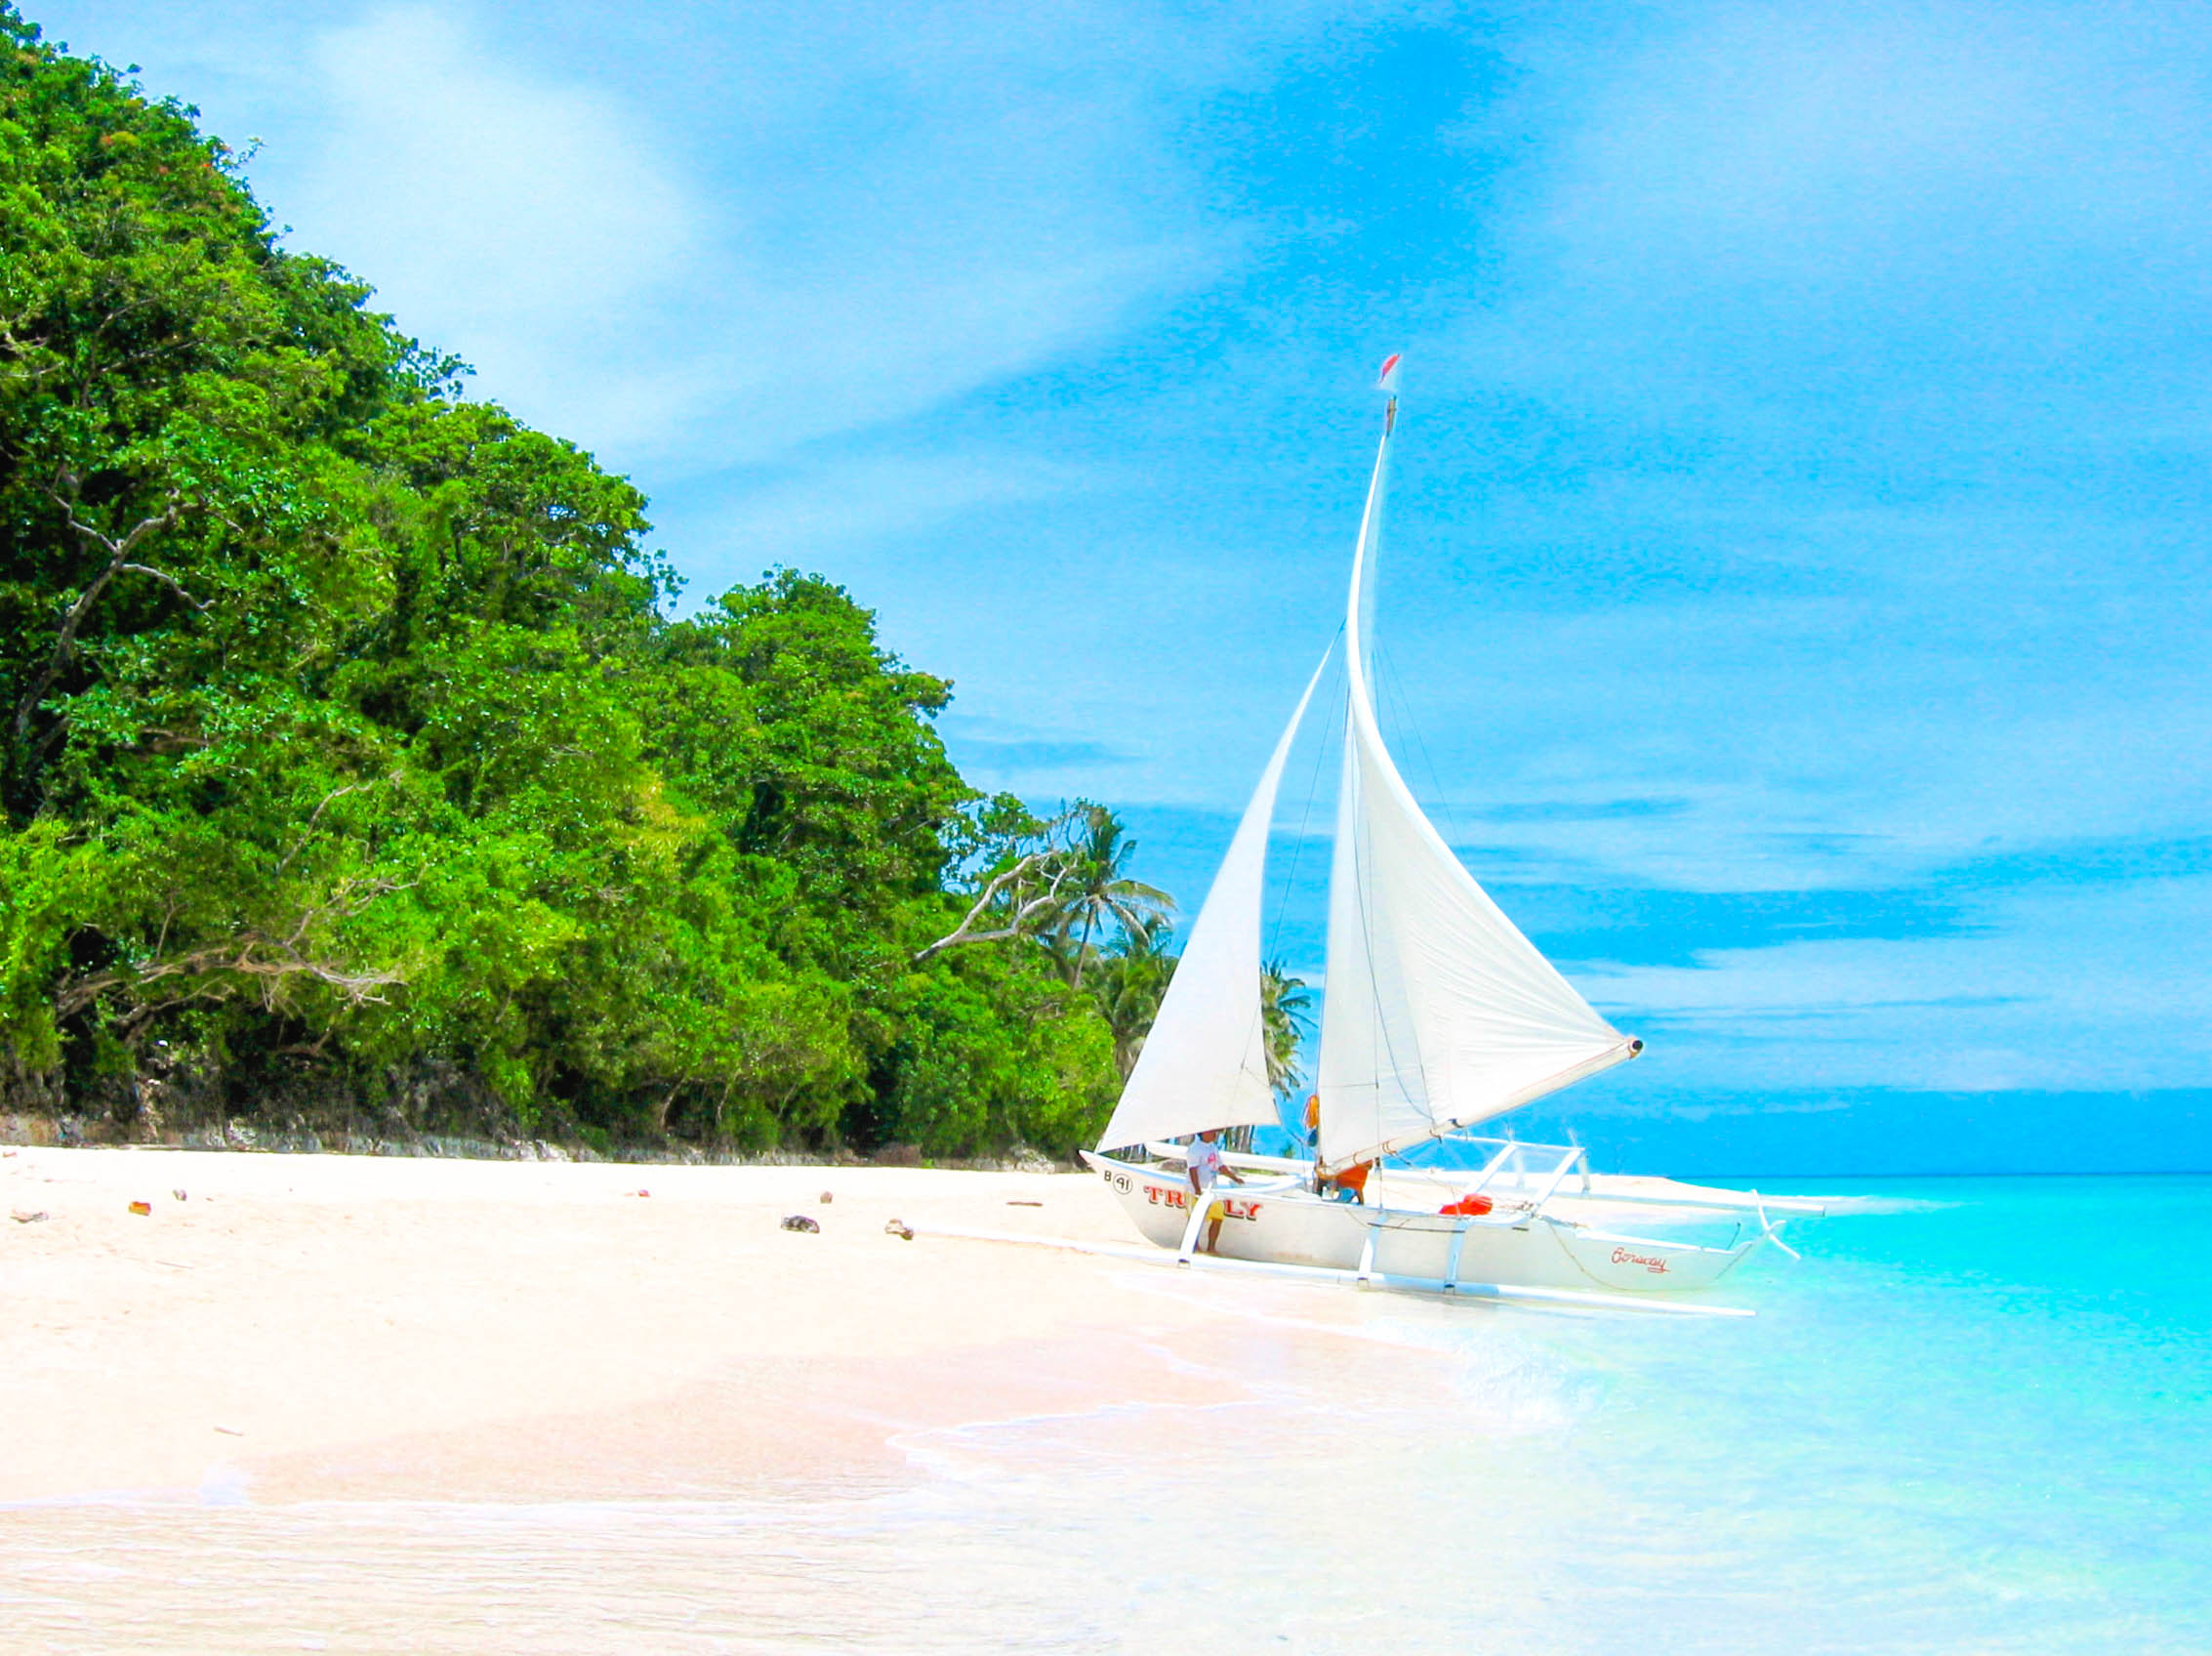 Small white sailboat moored on a white sand beach with green trees under a blue sky in Boracay, Philippines